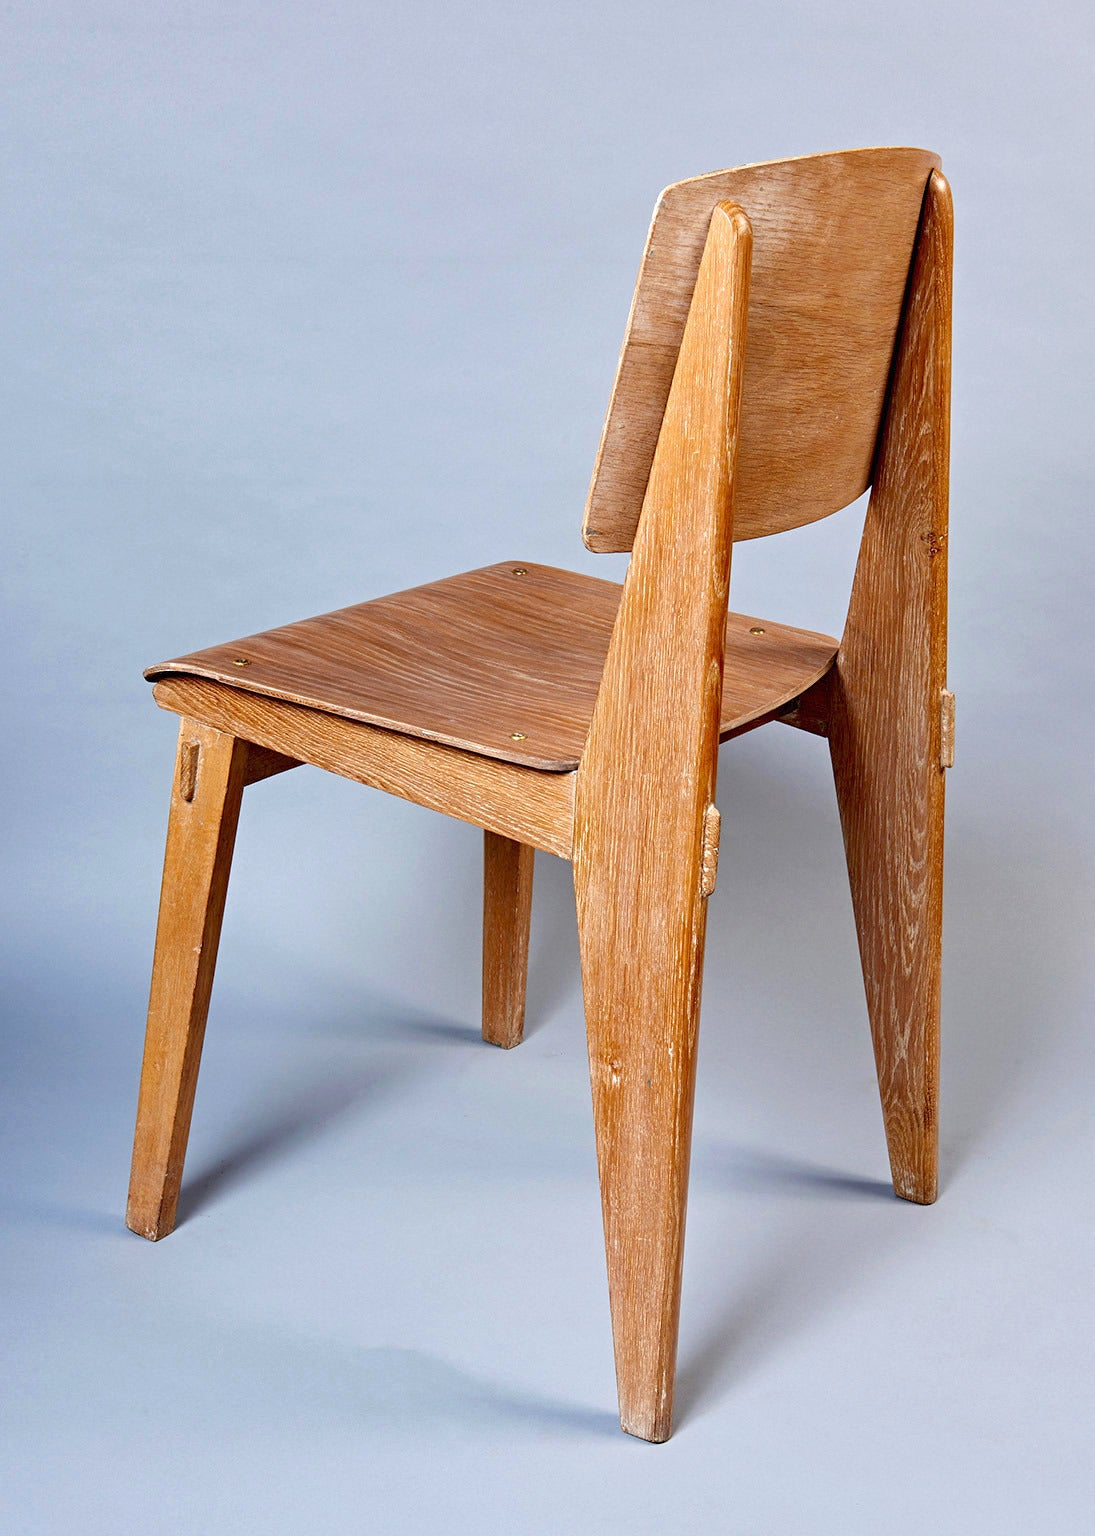 standard chair tout bois by jean prouv at 1stdibs. Black Bedroom Furniture Sets. Home Design Ideas